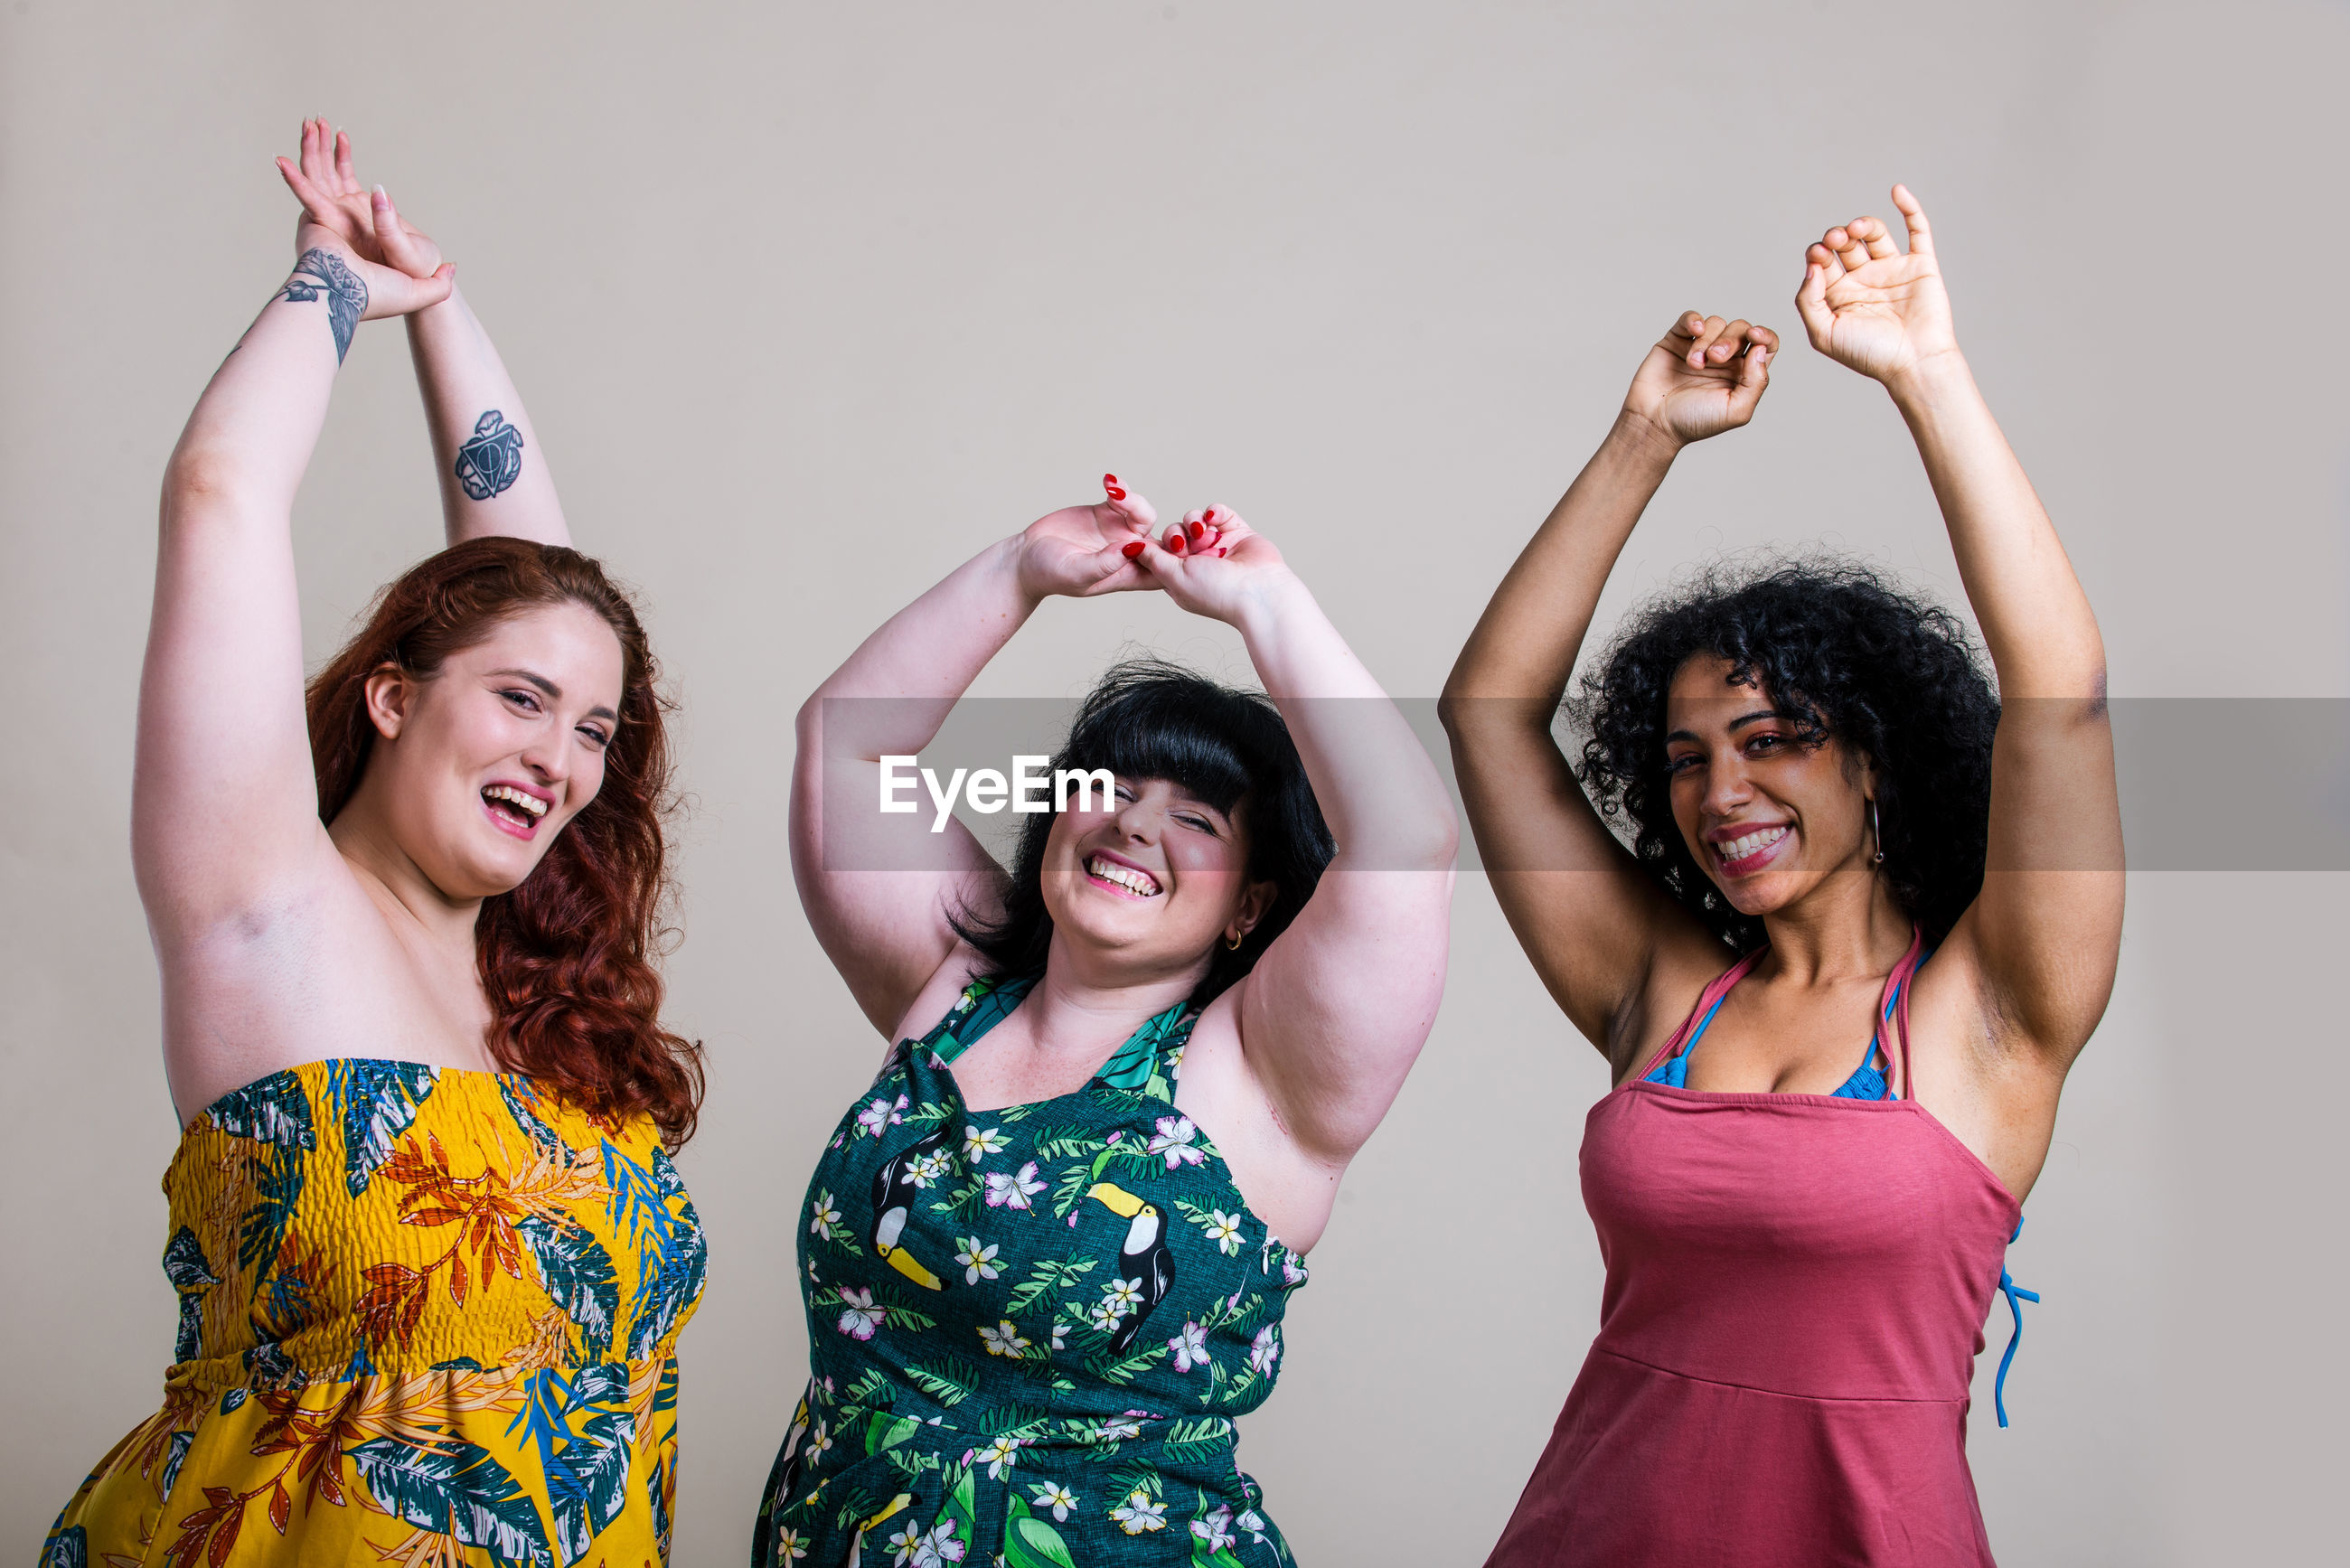 Portrait of smiling young women with arms raised against colored background